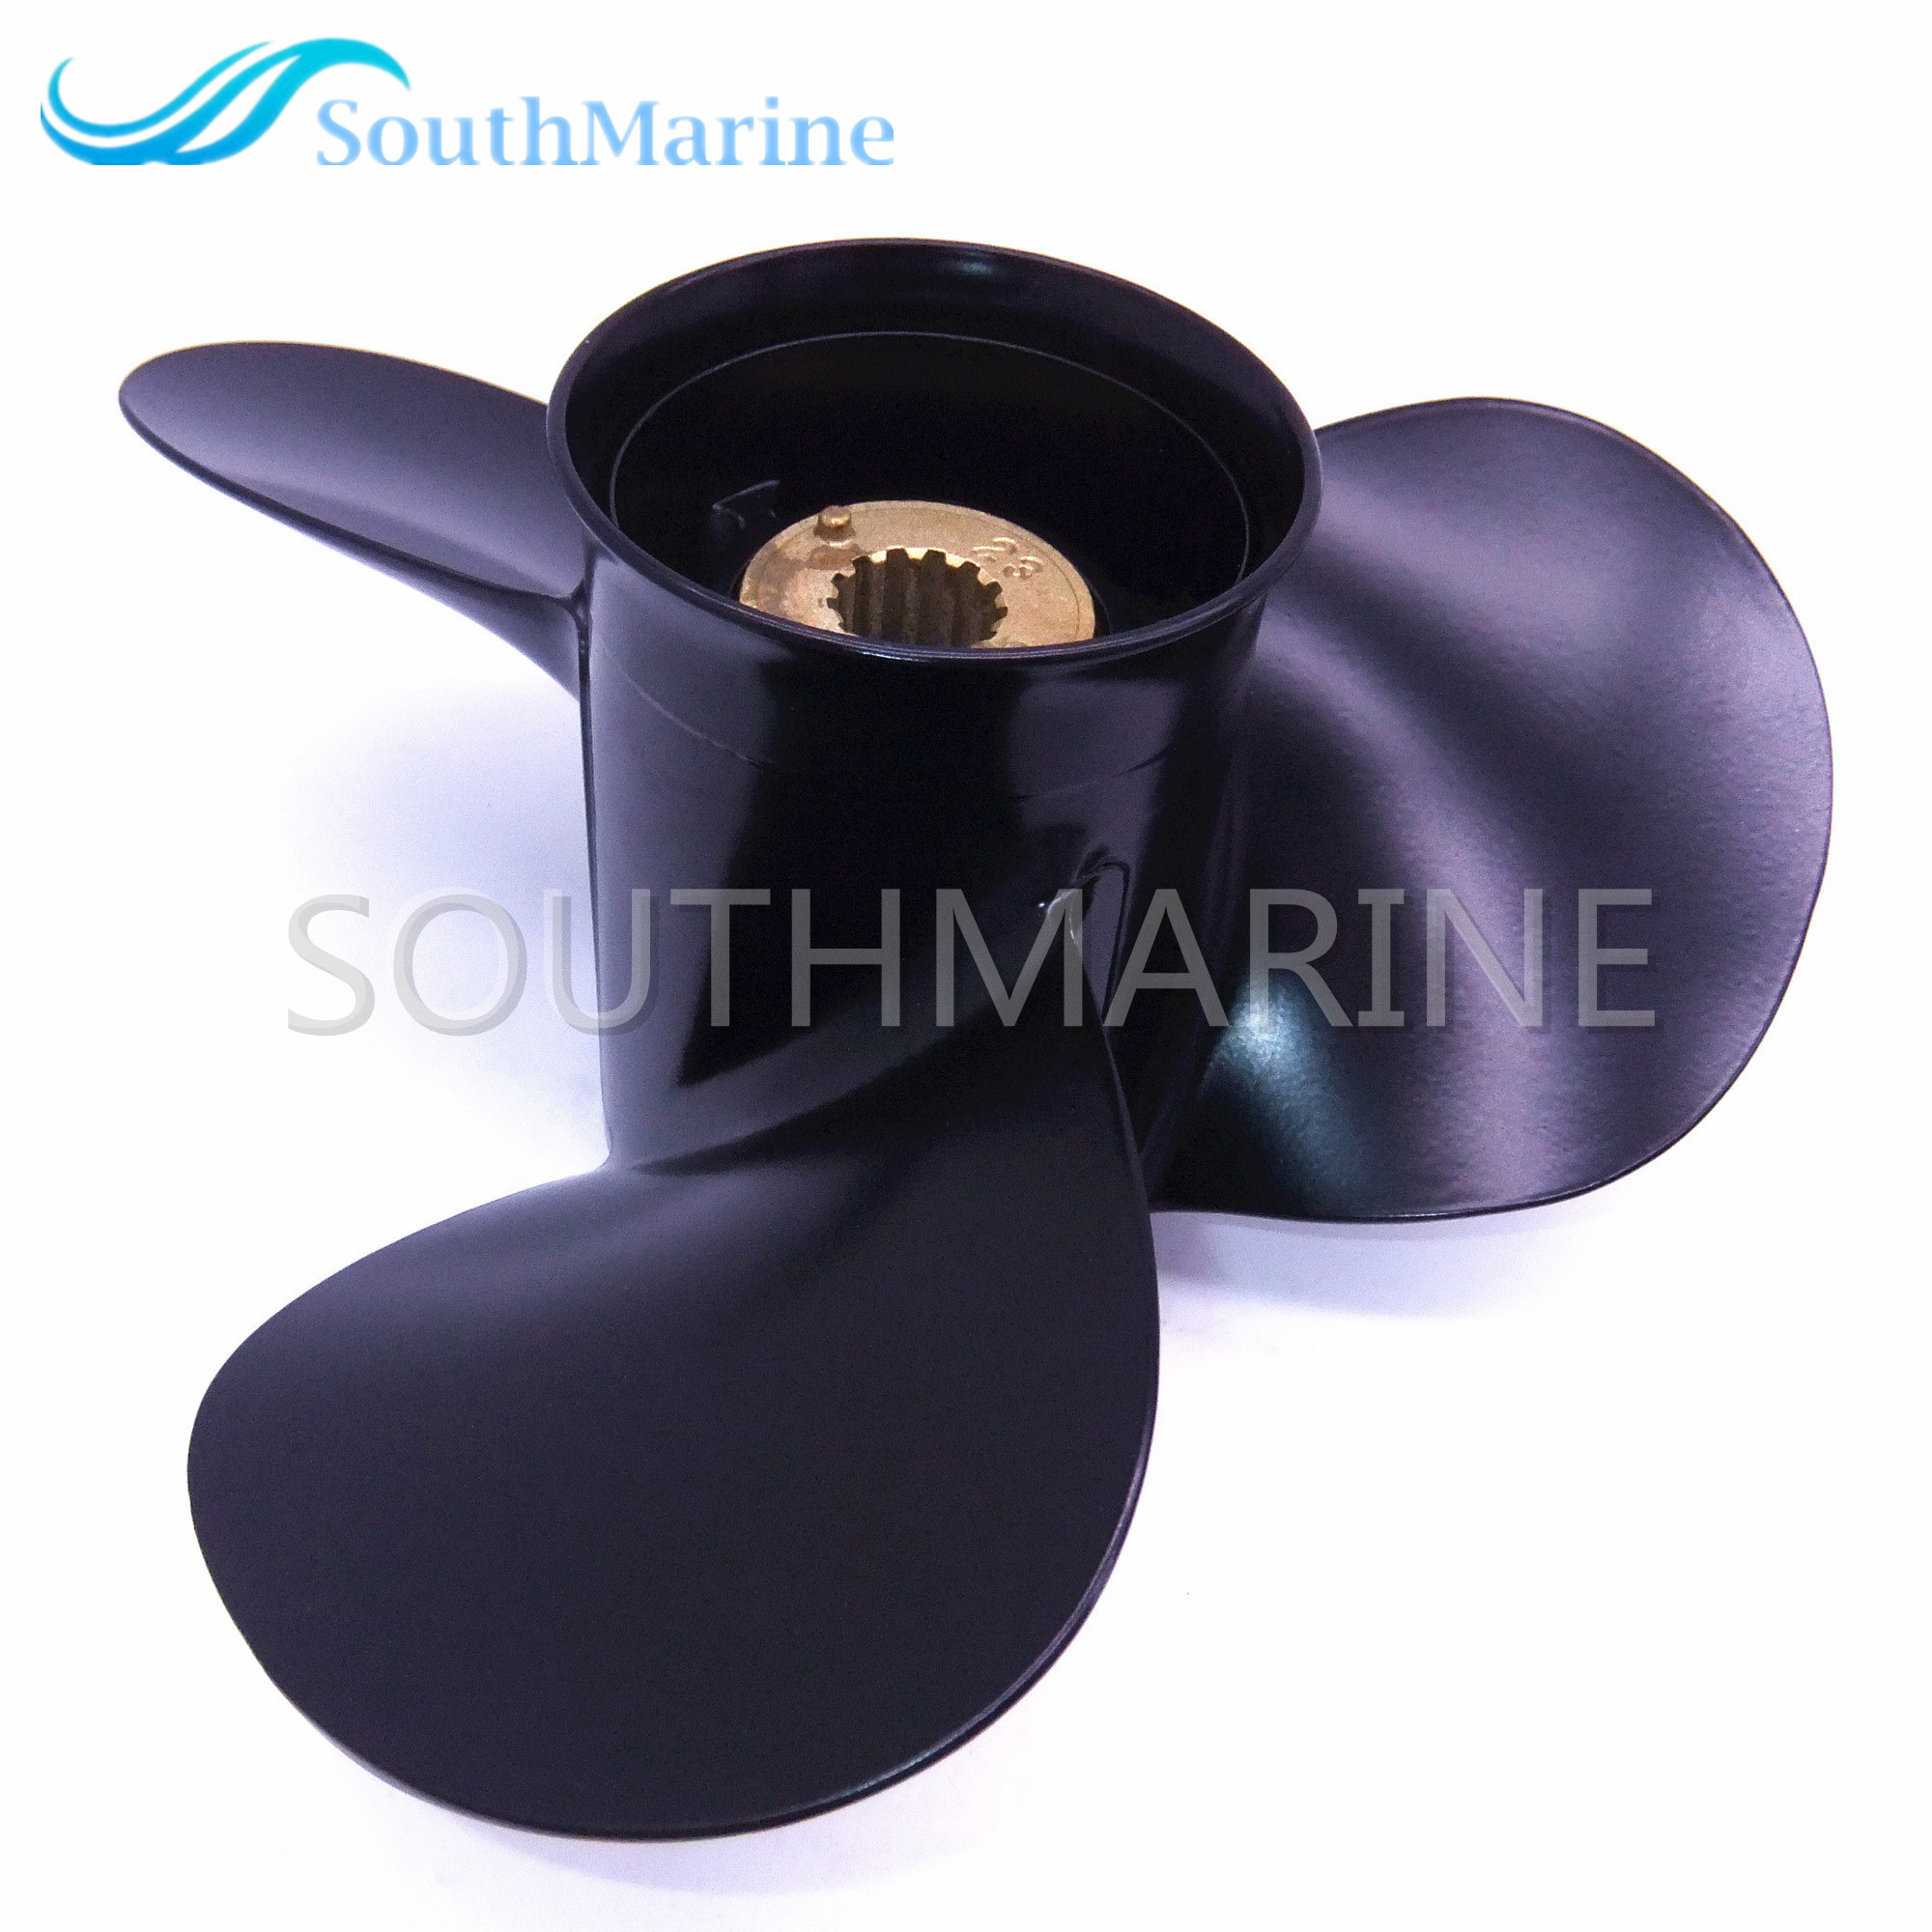 Outboard Engine 11 1 8x13 G Aluminum Propeller for Mercury 40HP 45HP 48HP 50HP 55HP 60HP